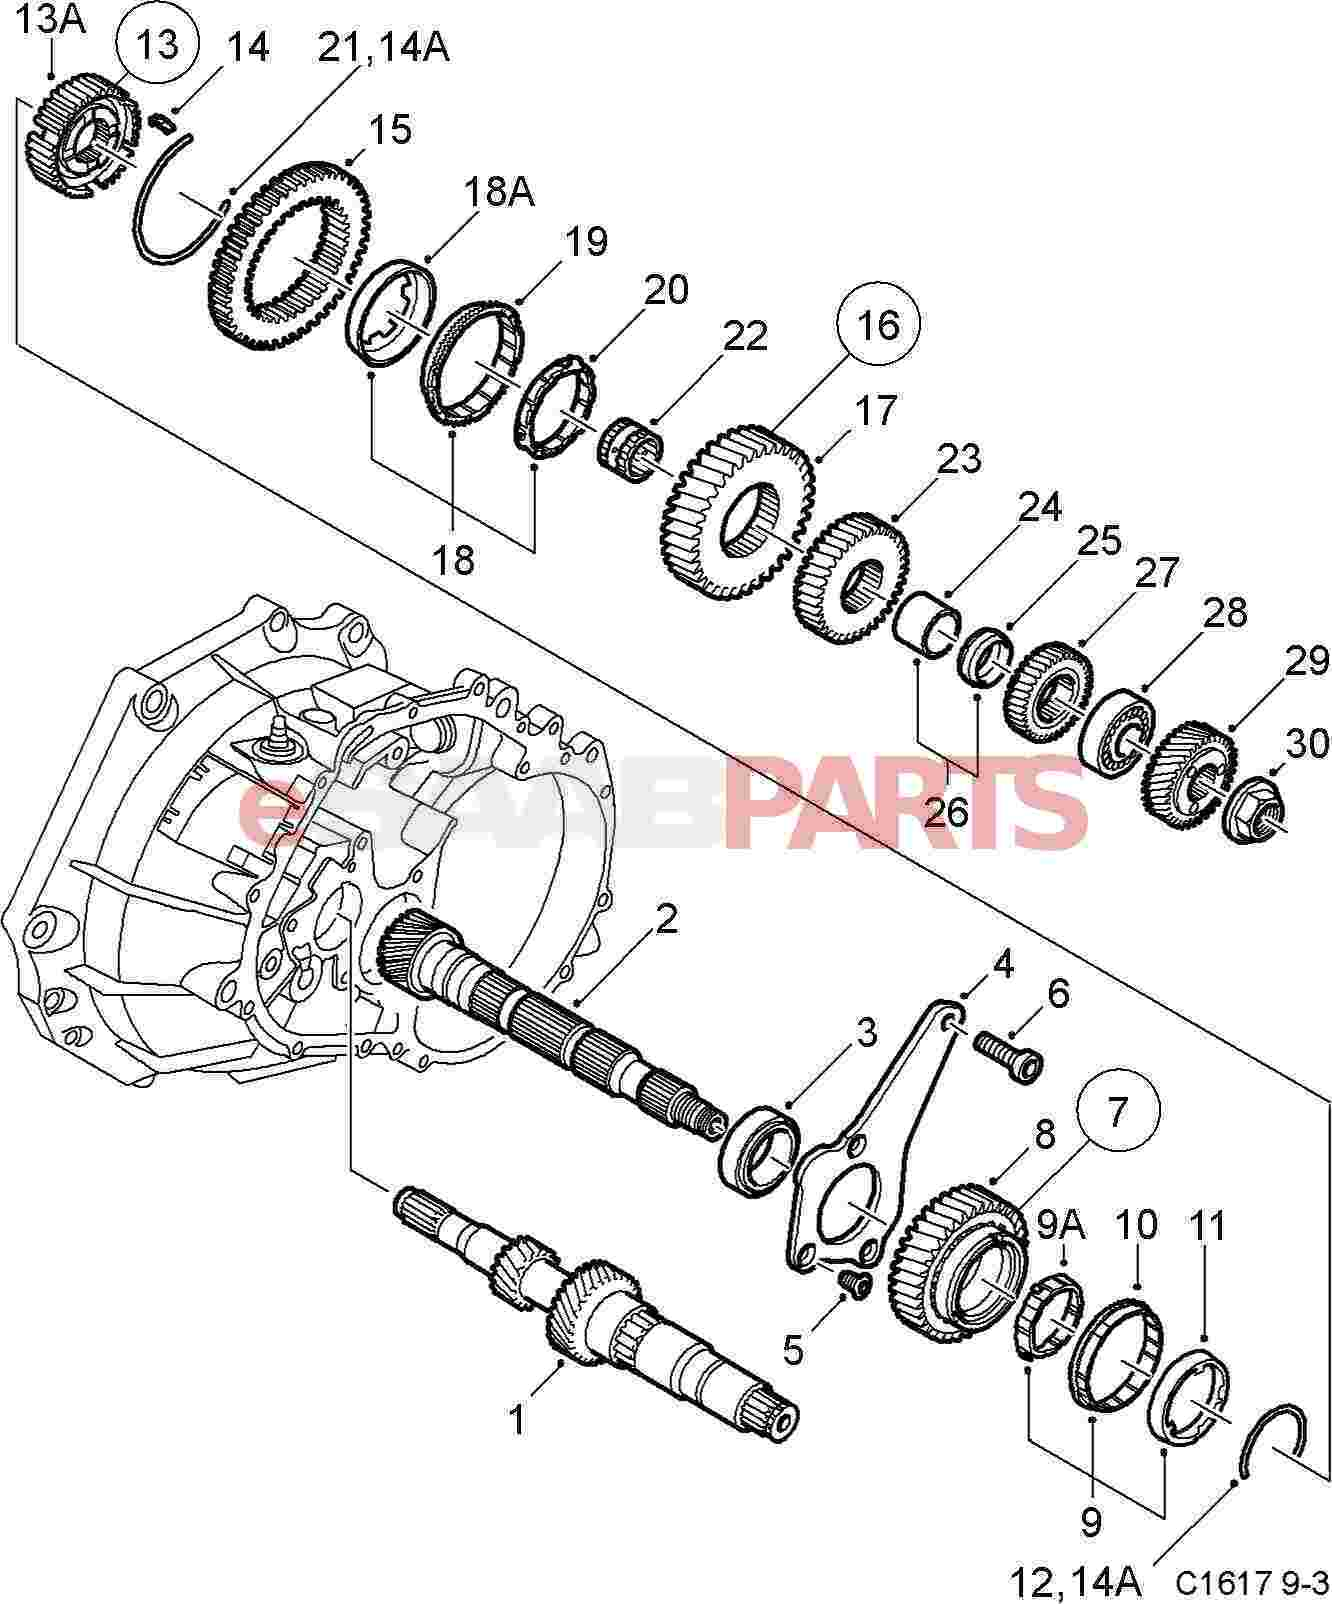 97 saturn sl1 fuse box diagram best wiring library 2013 Renault Espace related with 97 saturn sl1 fuse box diagram